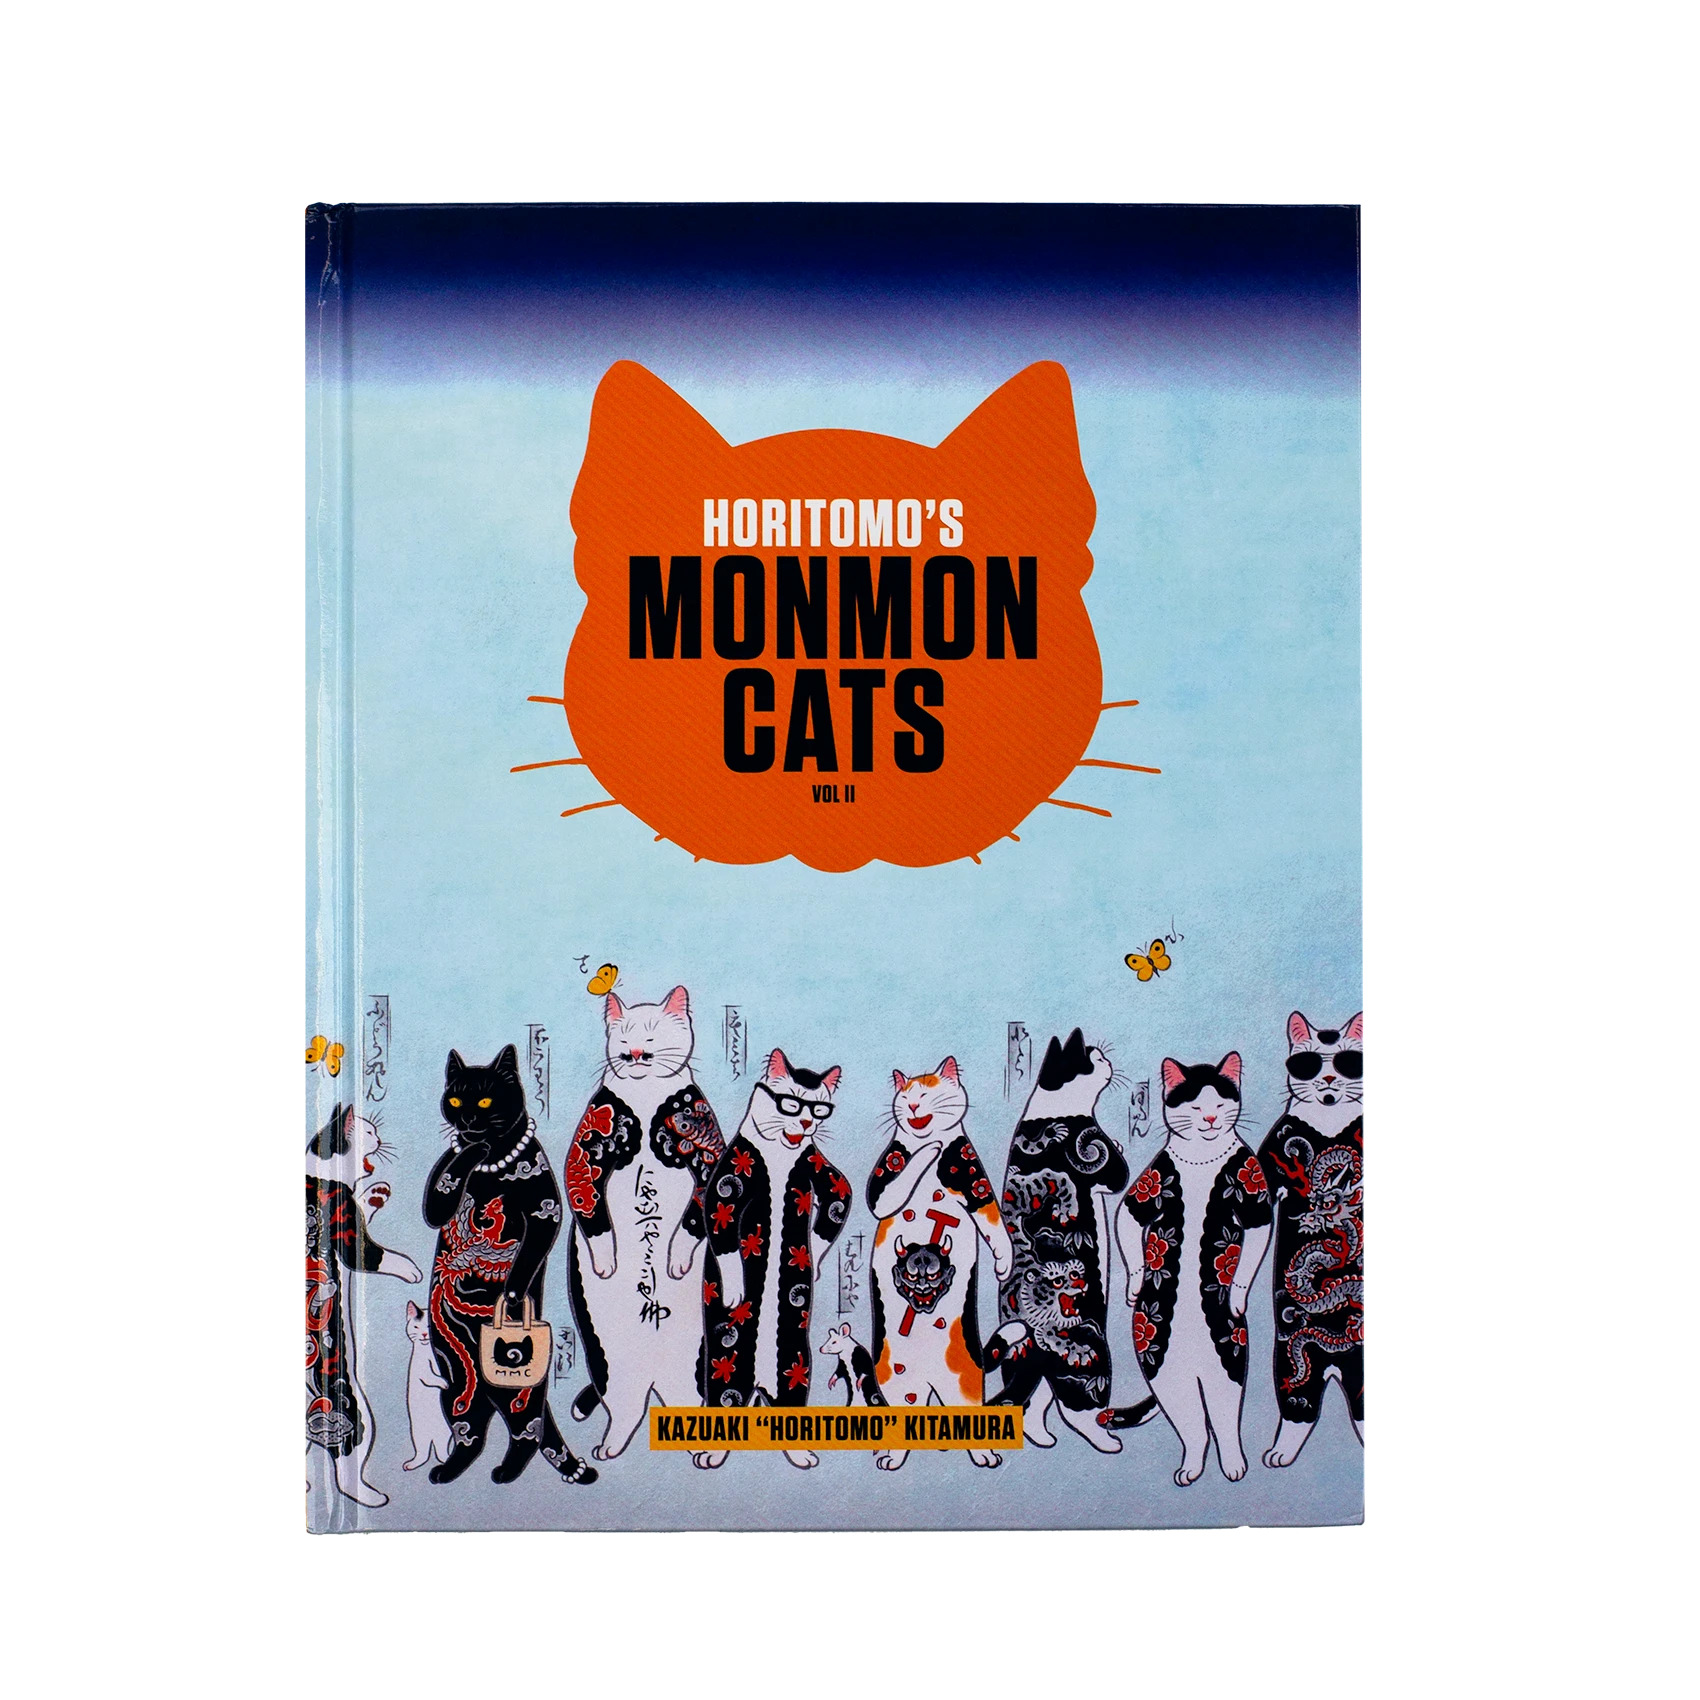 Monmon Cats Limited Edition Box Set - Monmon Cats Book Vol II Signed Hardcover